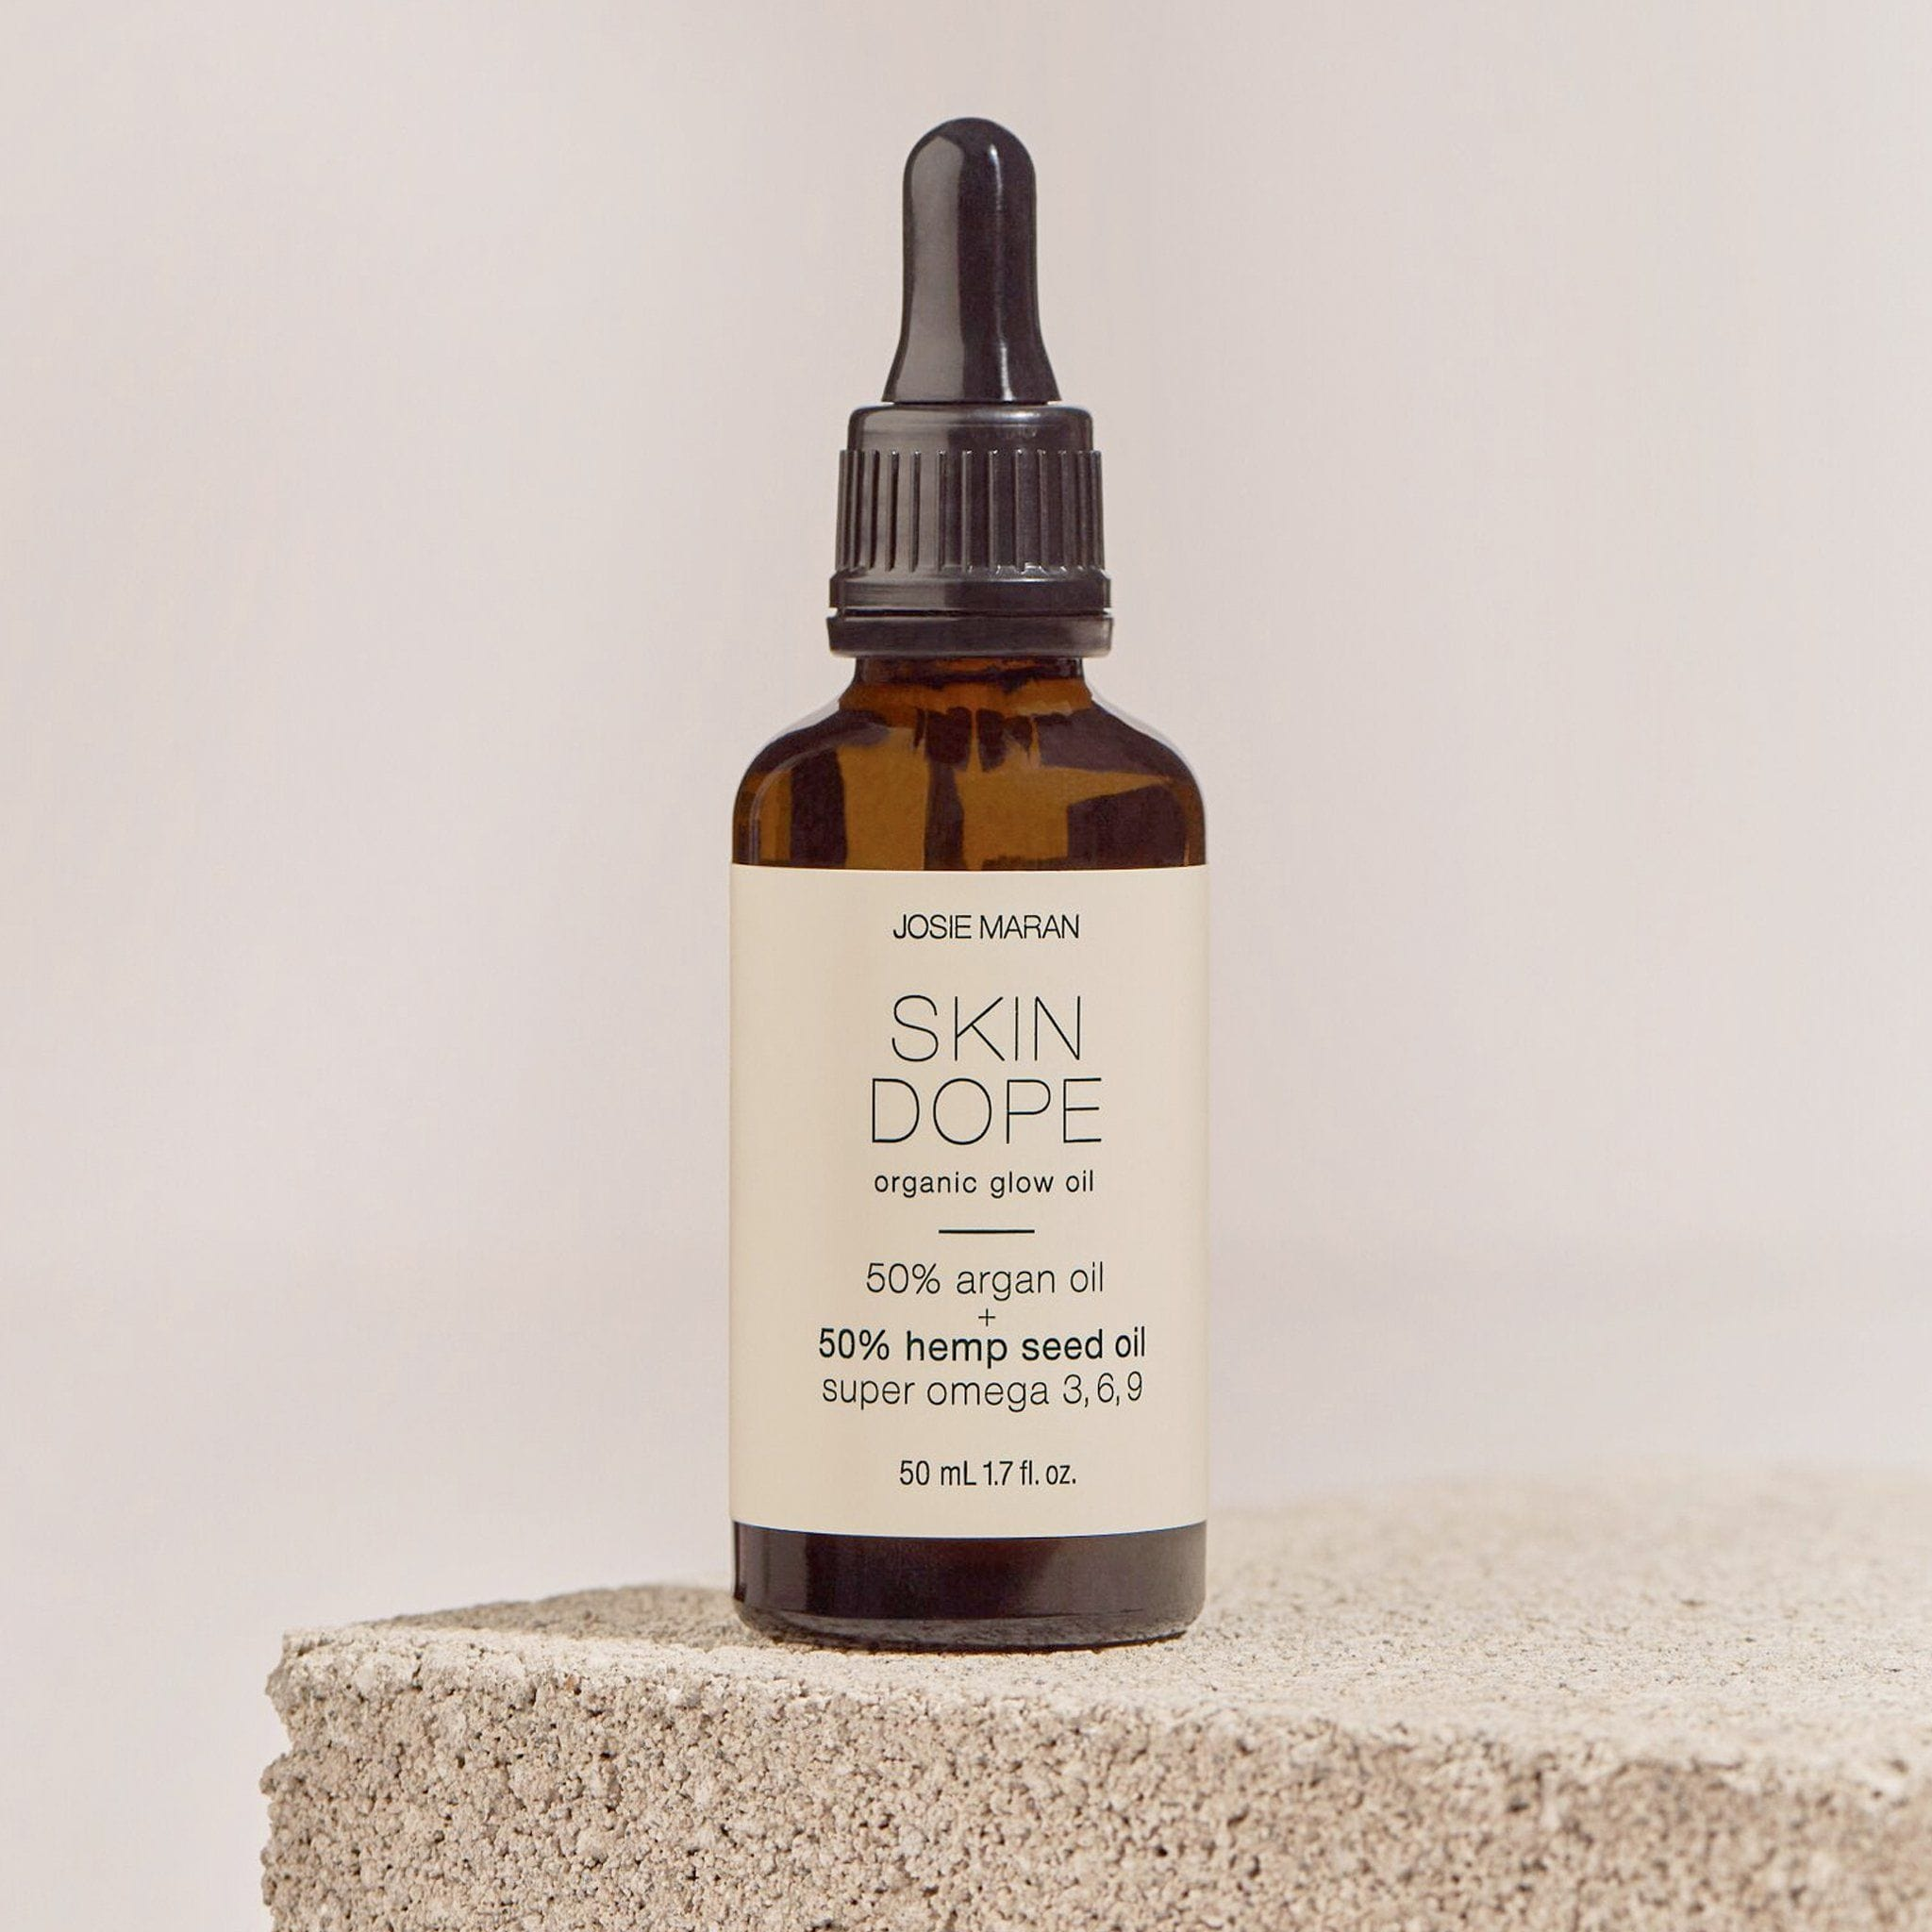 Skin Dope Argan Oil + Hemp Seed Oil